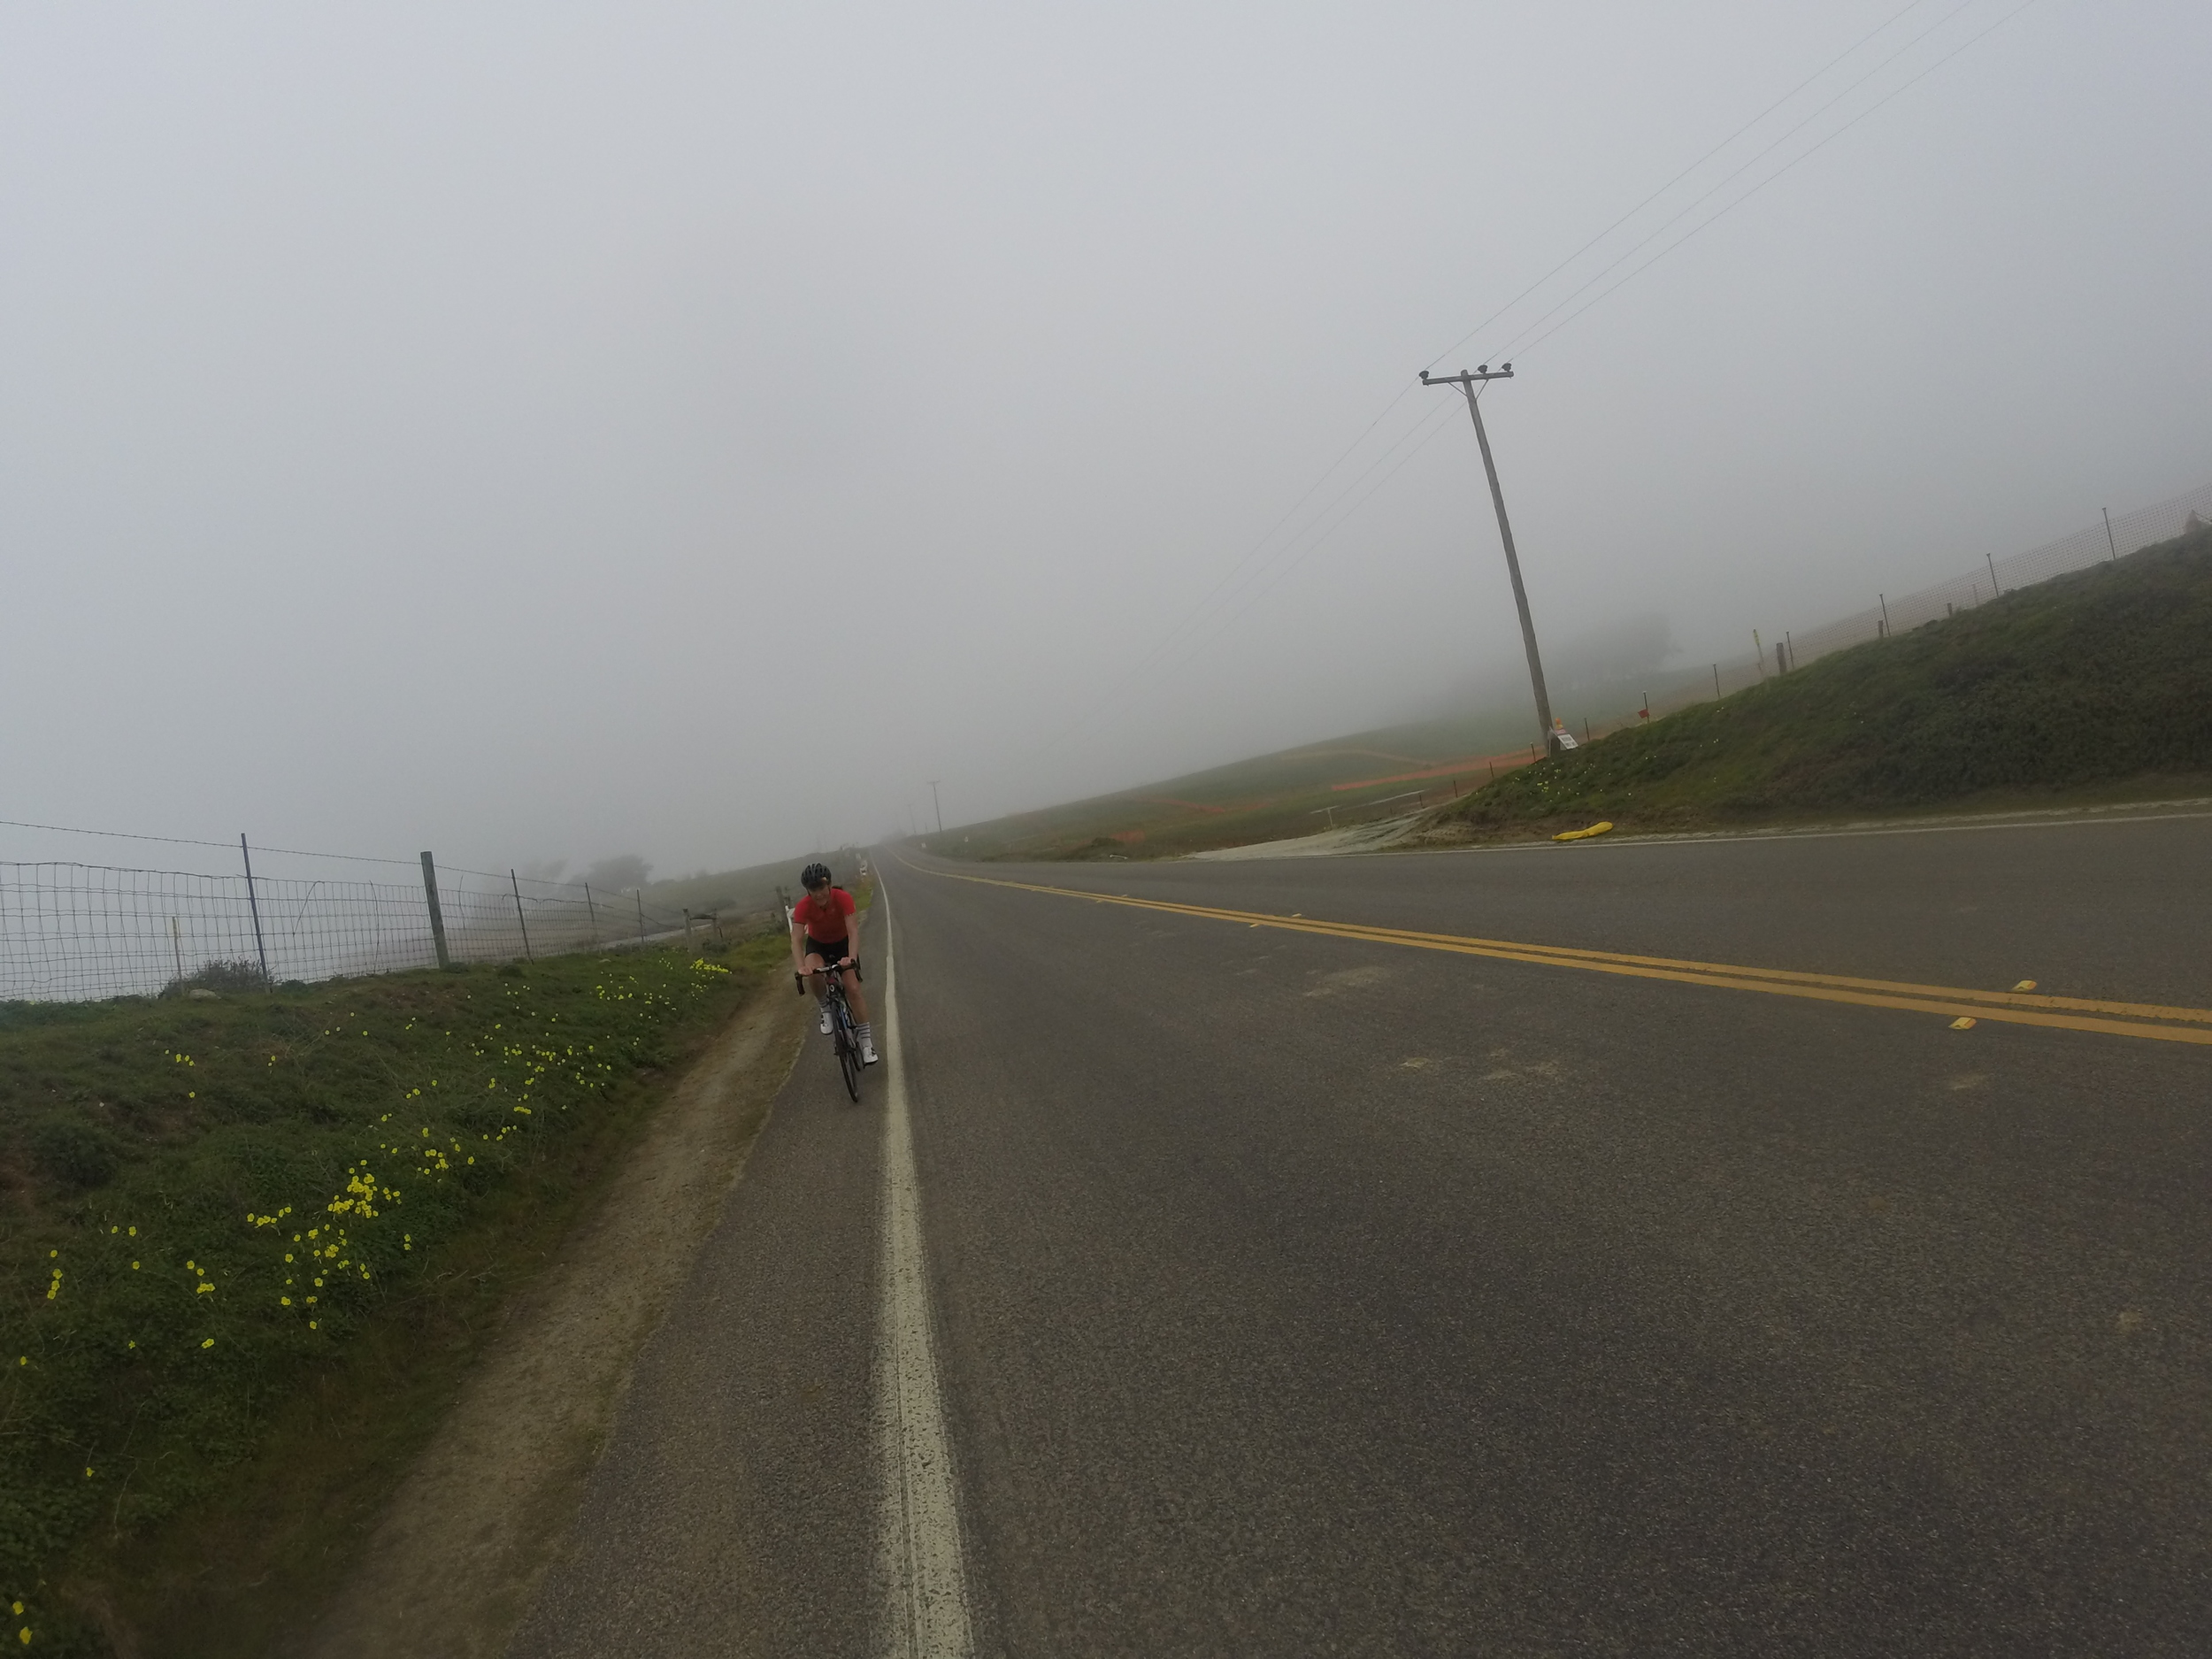 And then the fog hit!